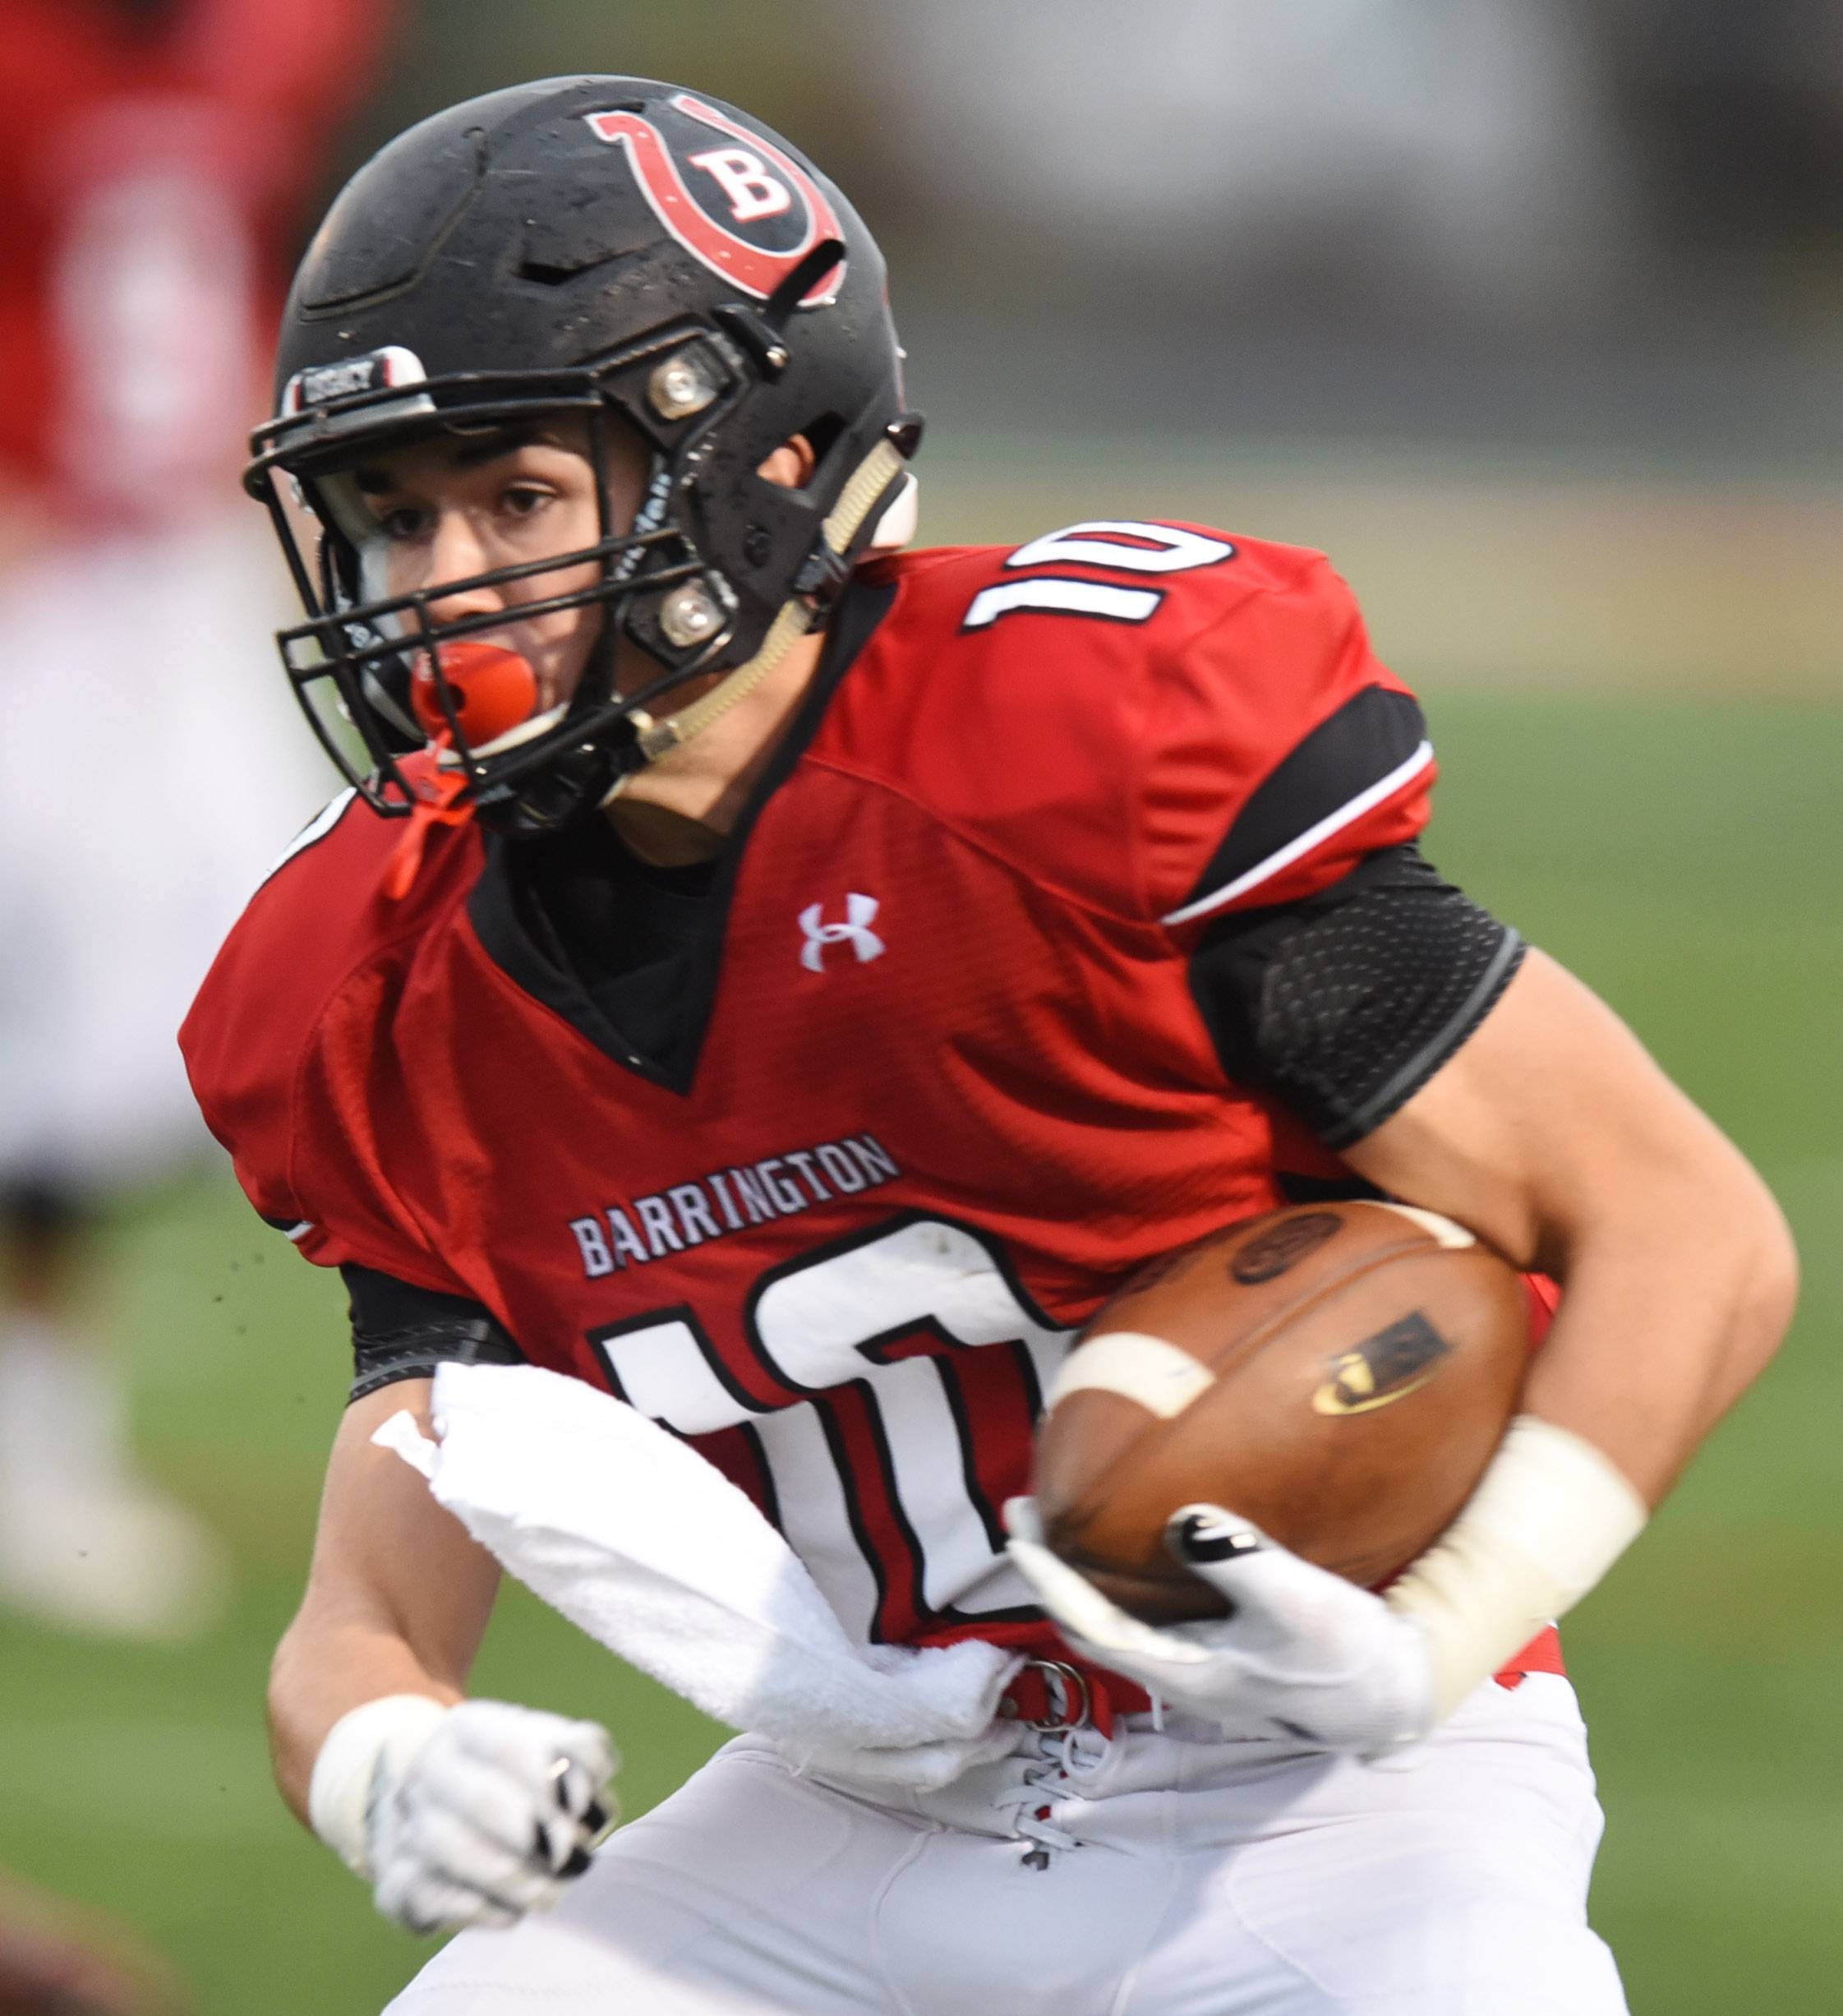 Logan Moews is among the returning players aiming to carry the load for a Barrington program with typically high hopes.